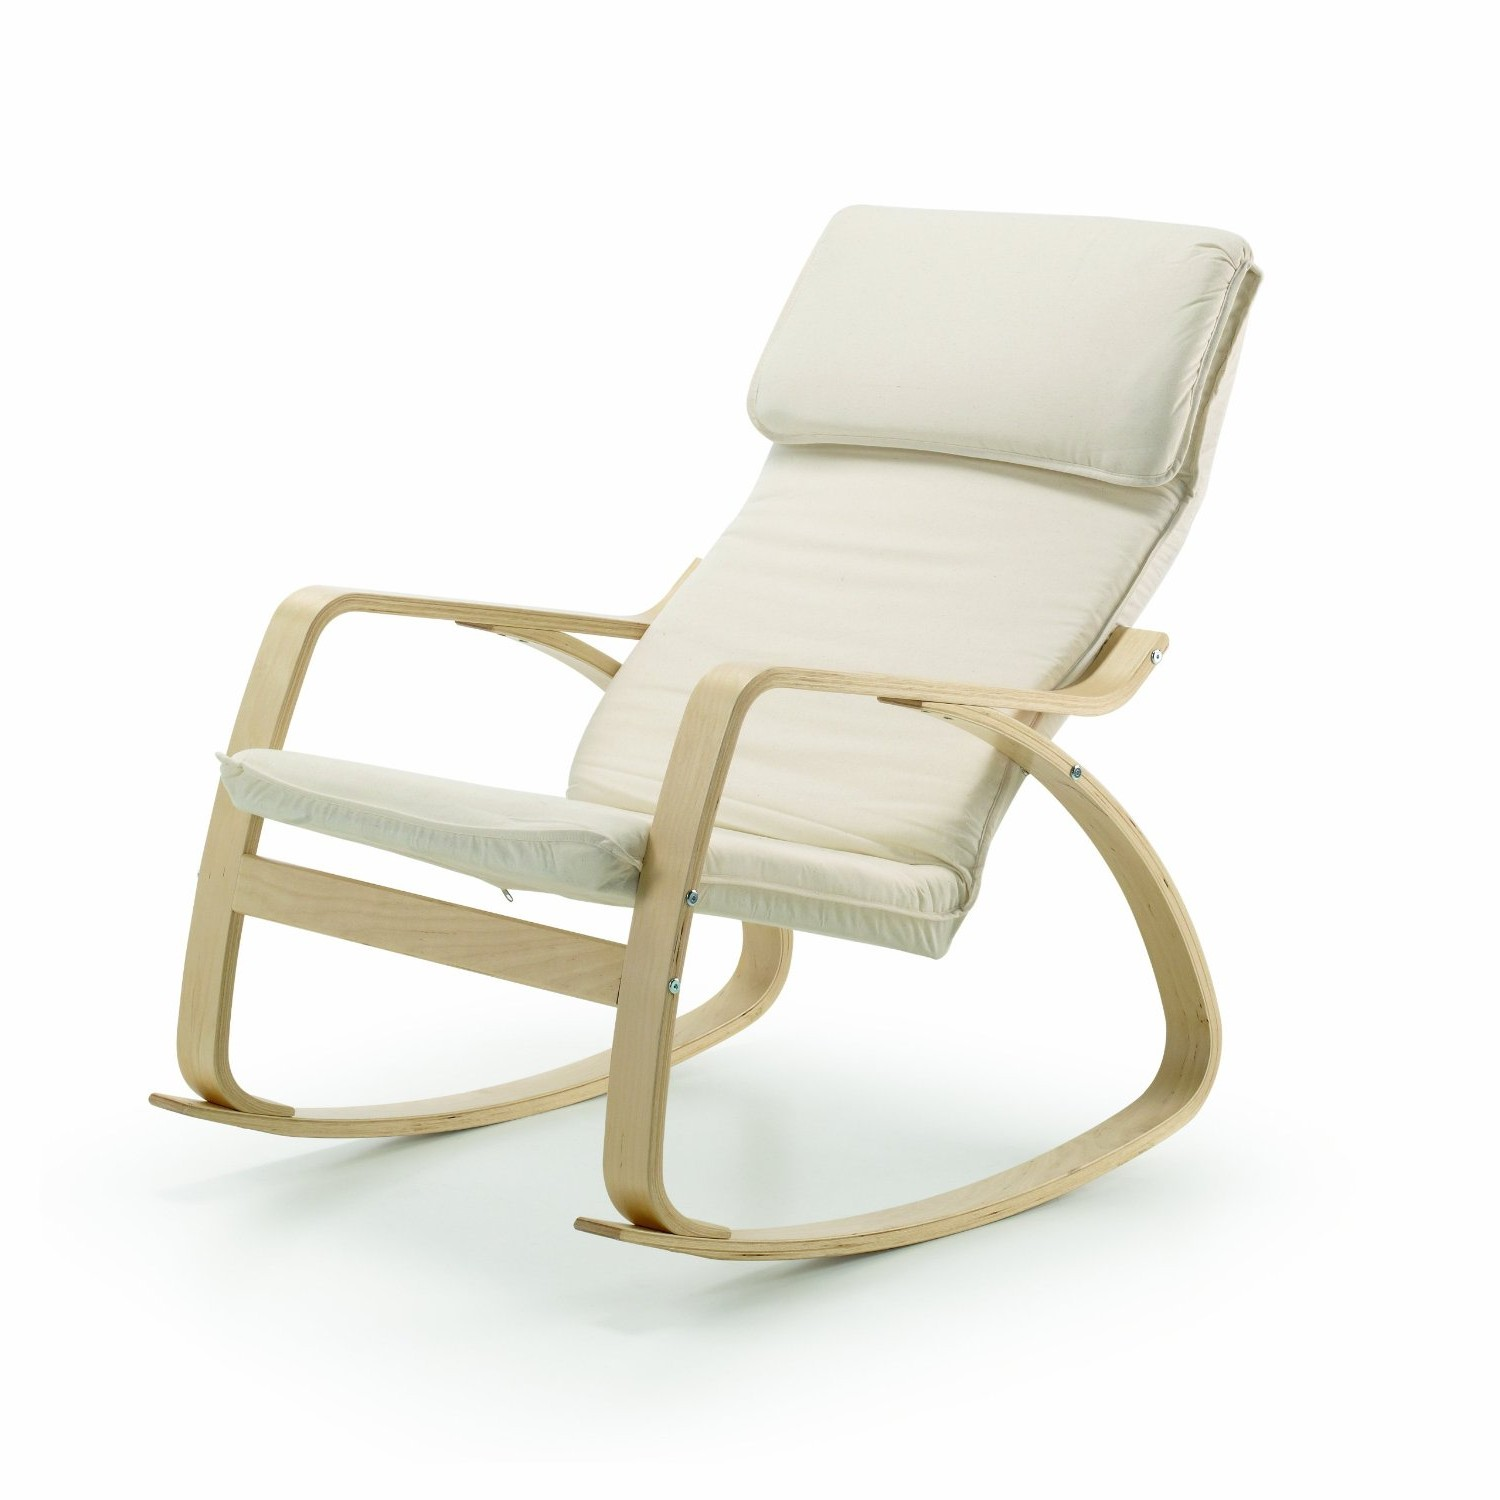 Top chaise pour allaiter with chaise allaitement for Chaise bercante allaitement